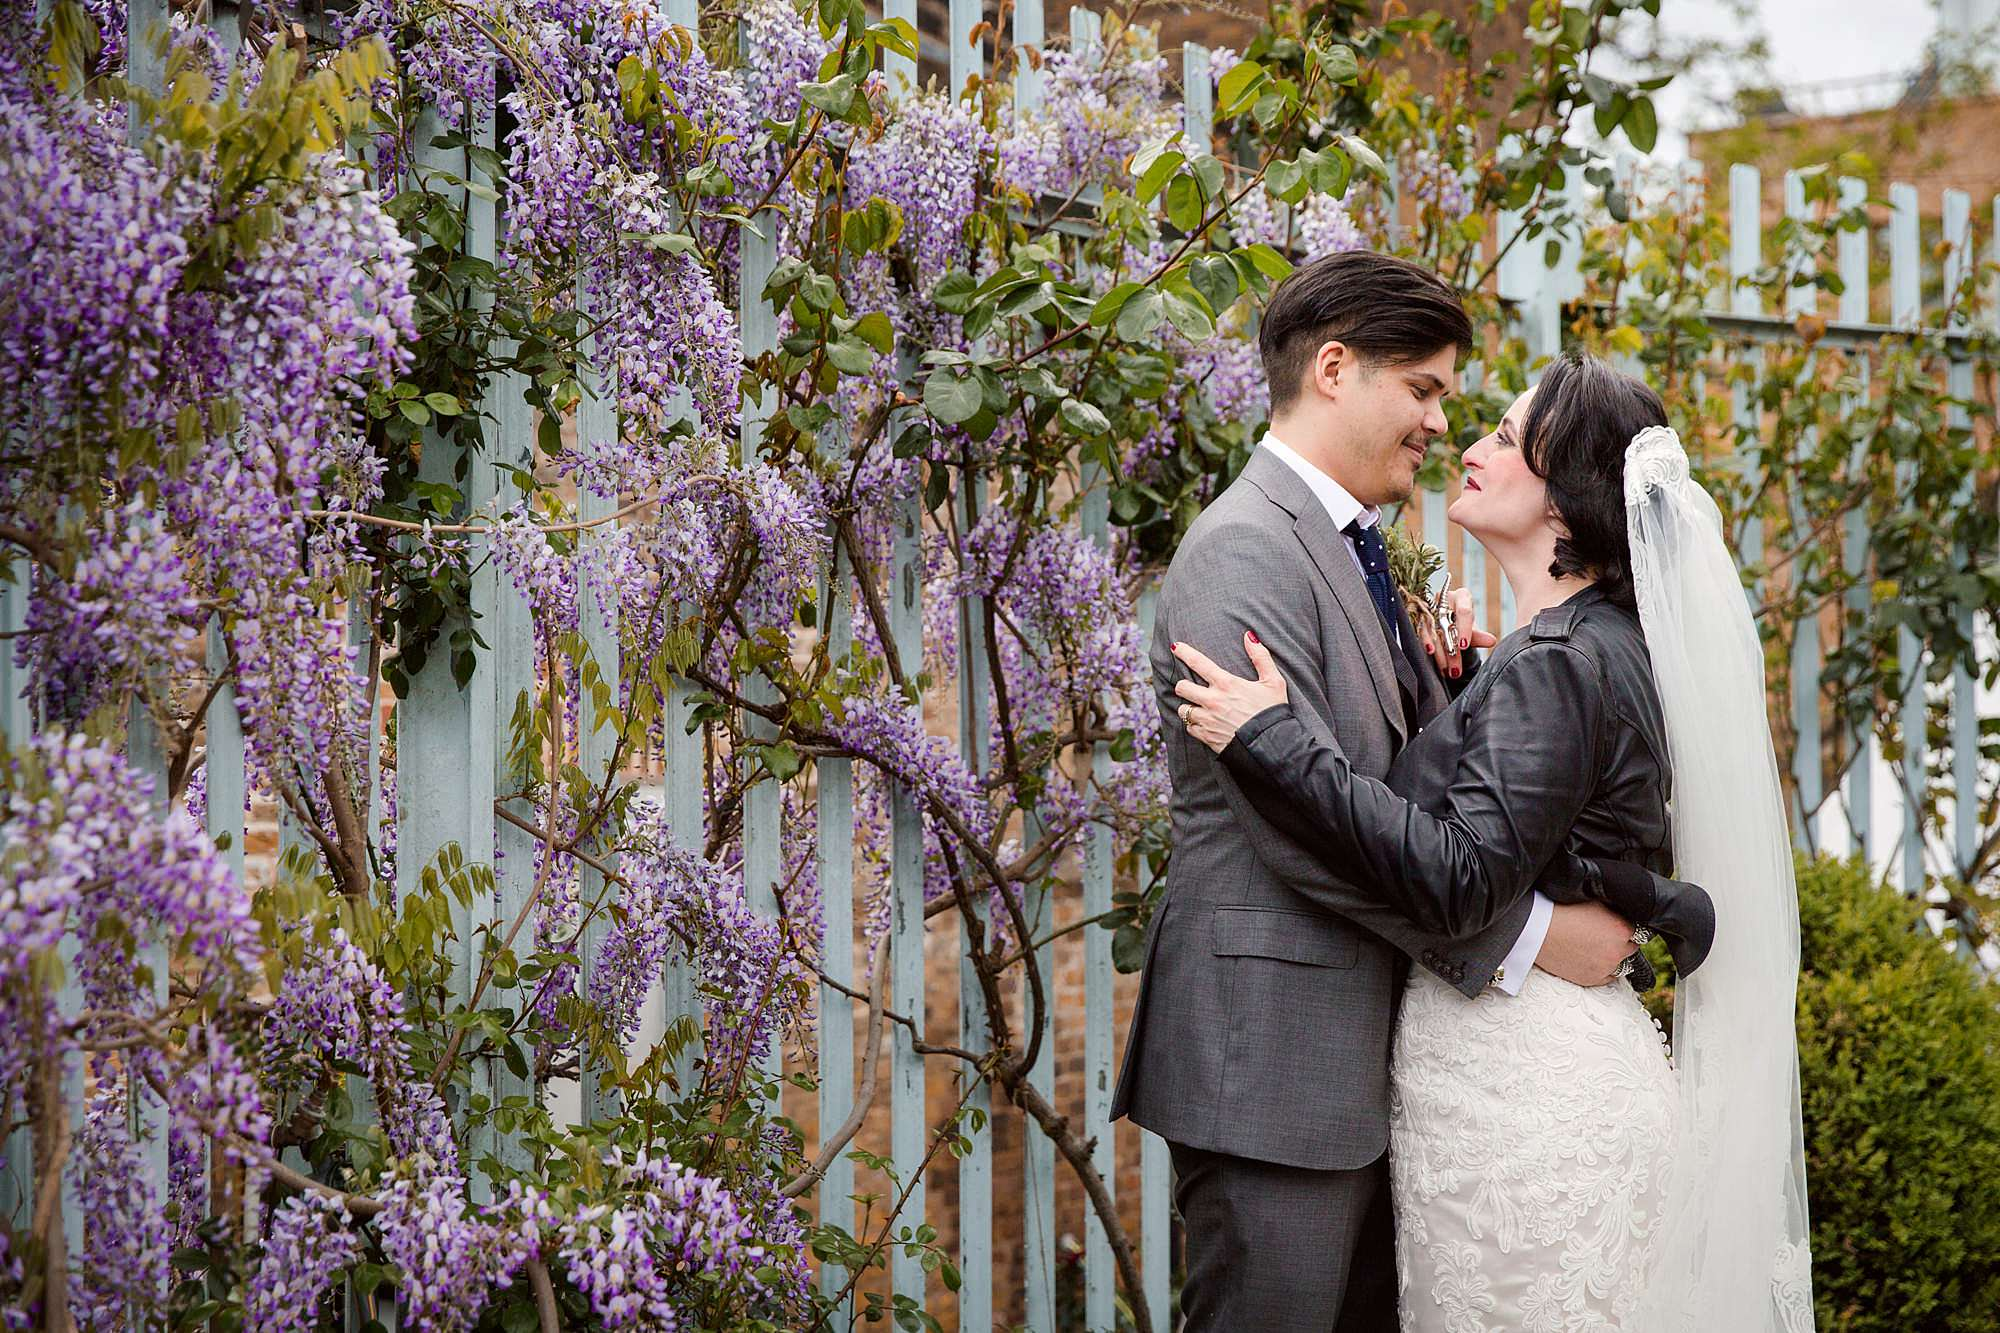 Brunel museum wedding bride and groom with wisteria